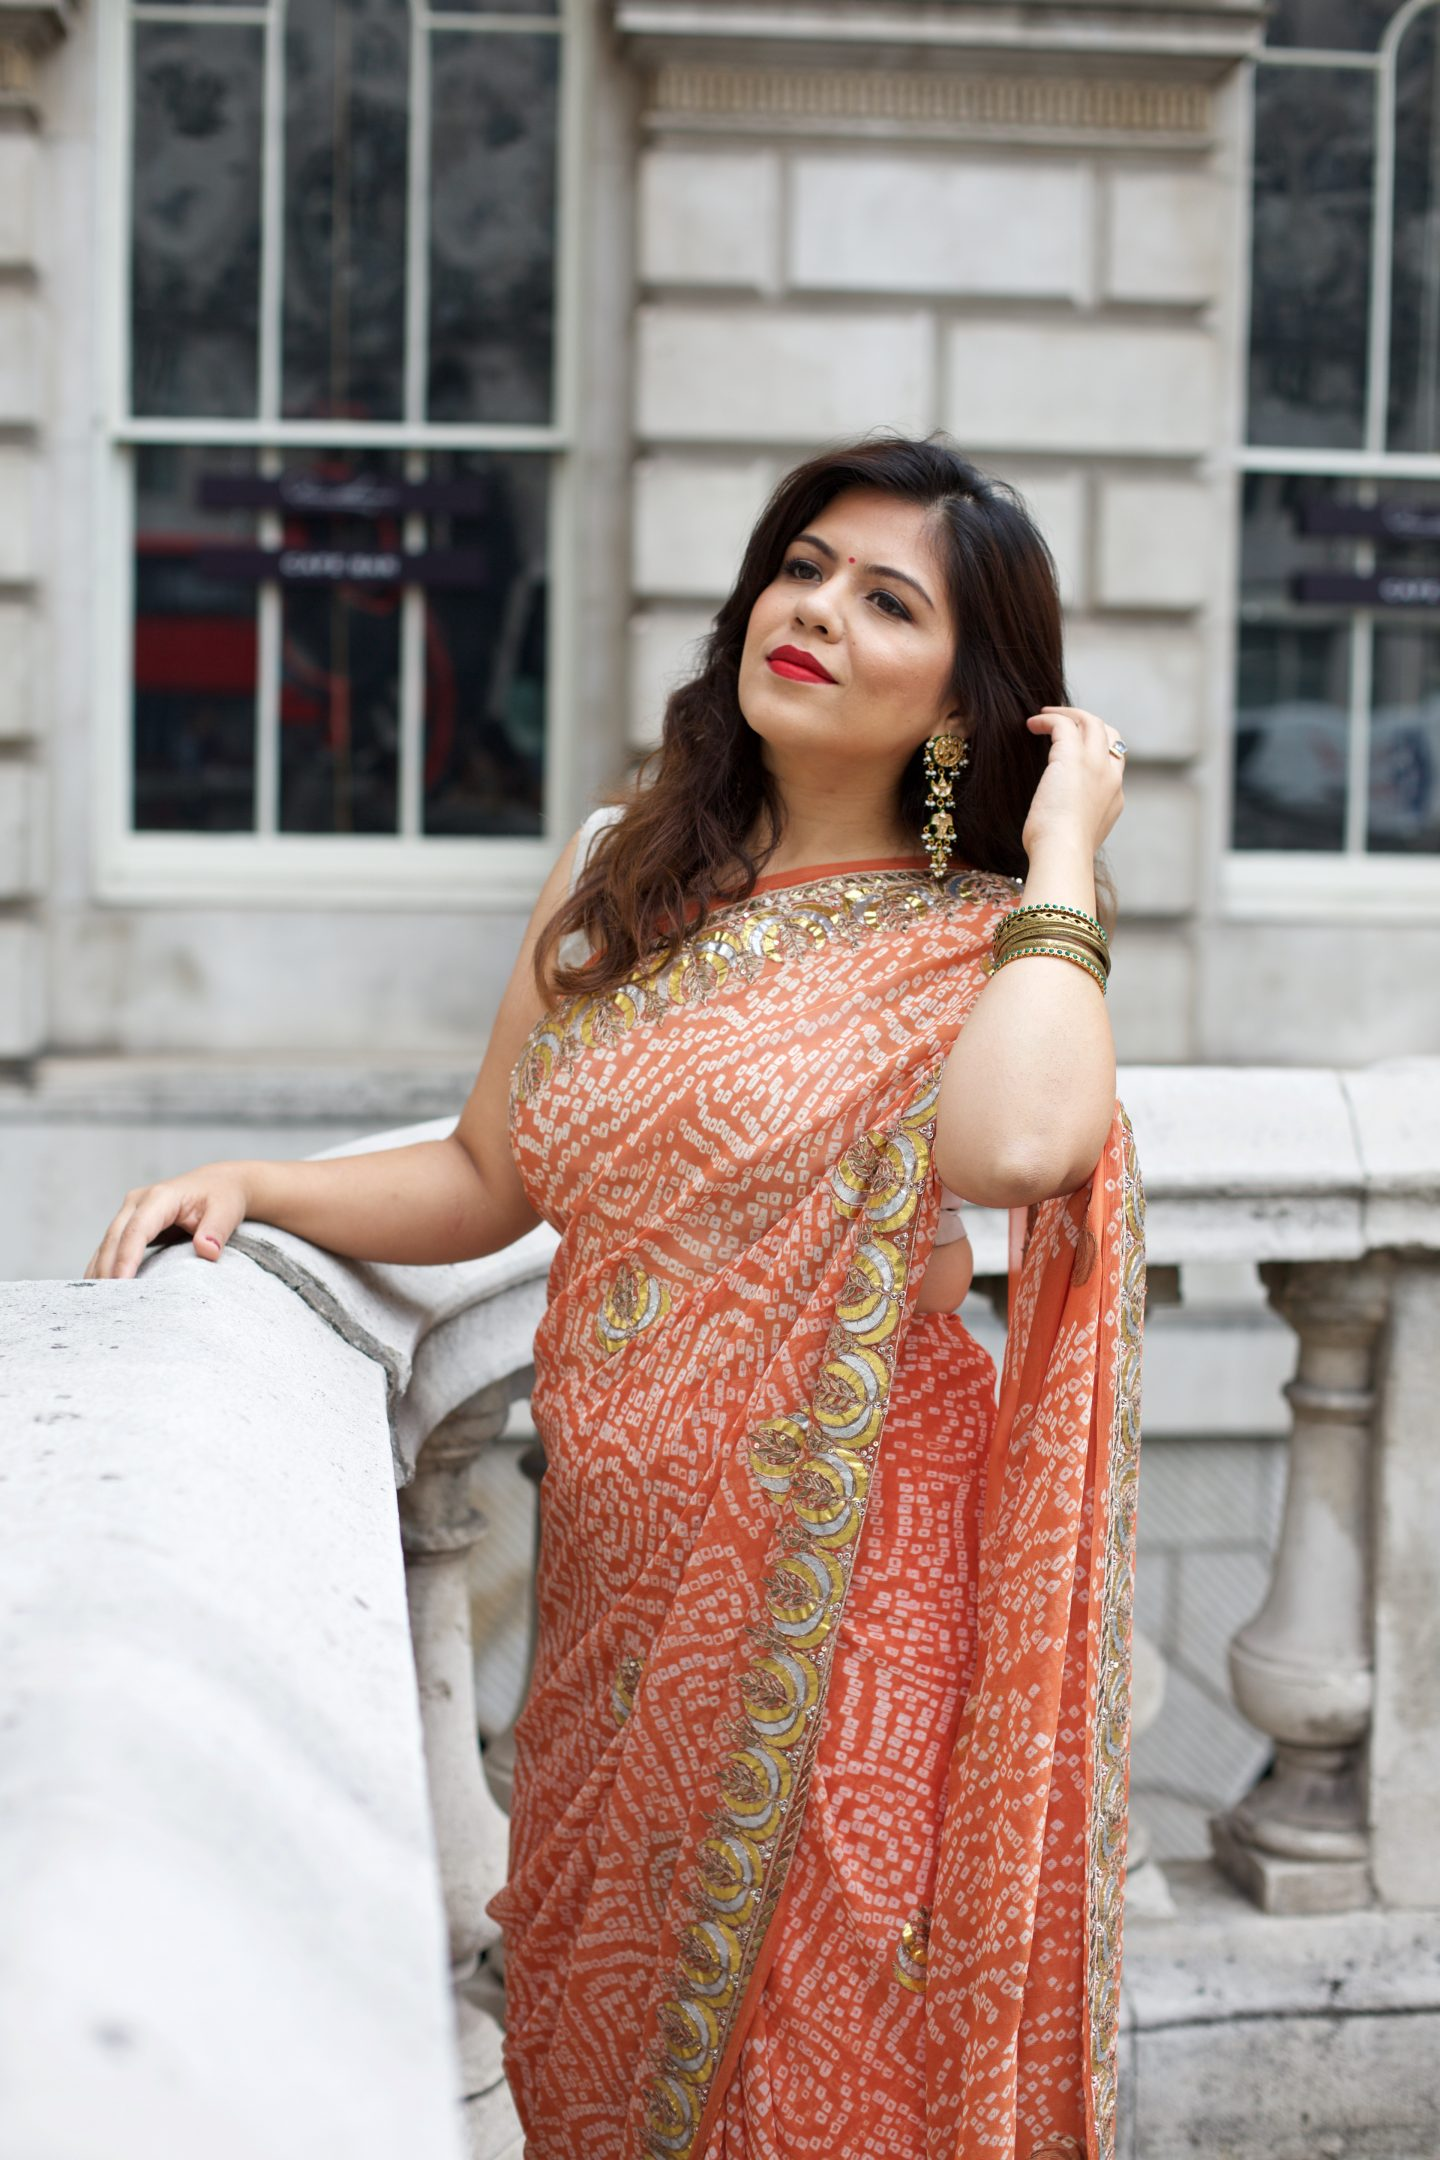 Indian fashion blog blogger Uk London Diwlai fashion